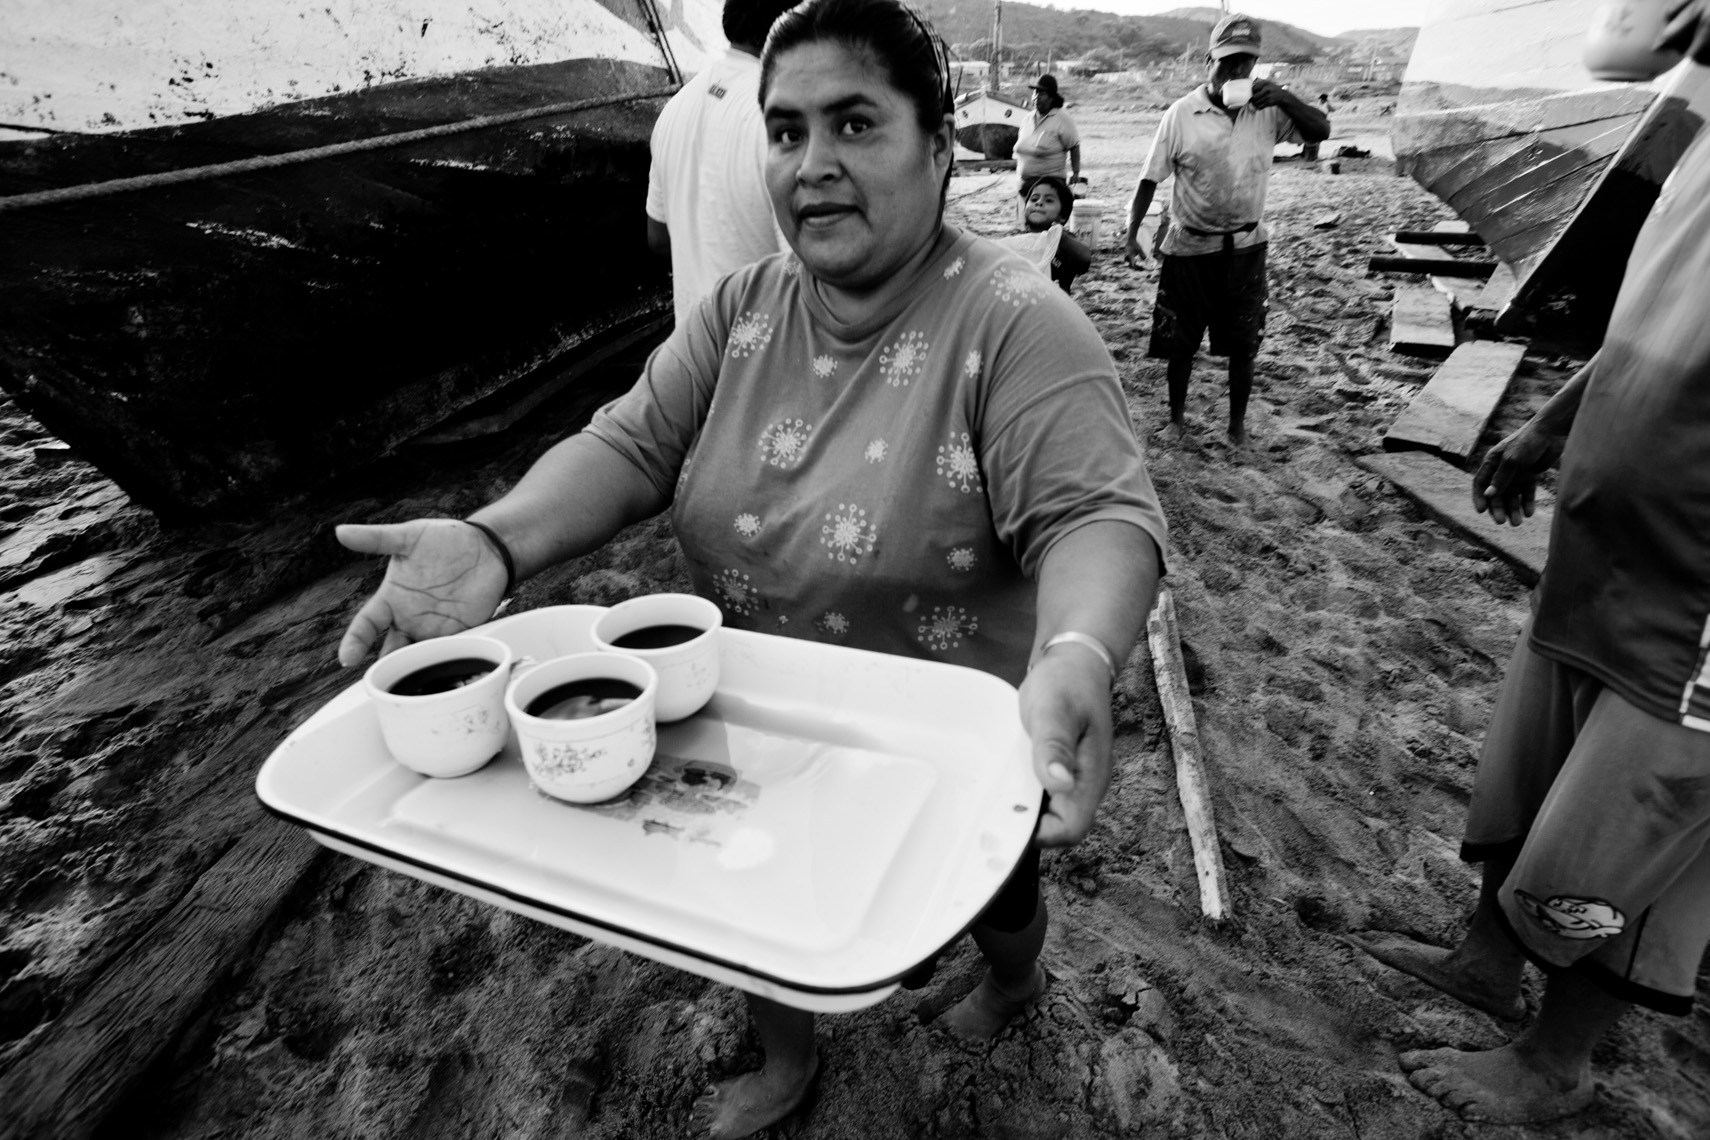 Woman serving coffee in small fishing village in Lobitos Peru, photograph by Forest Woodward